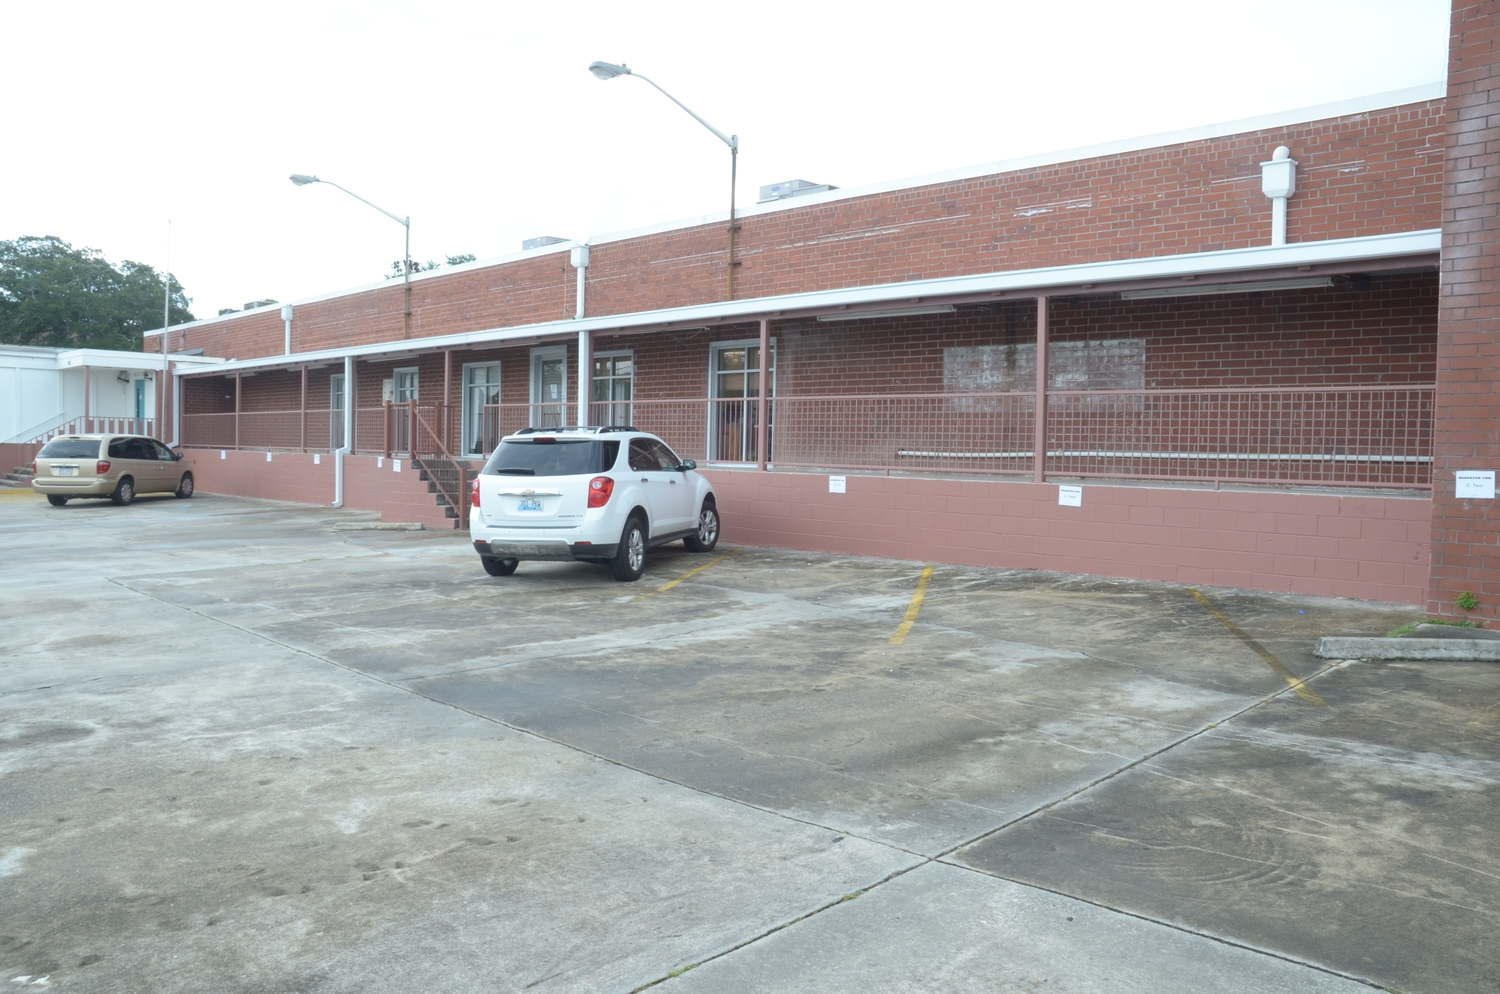 OUR FACILITY   140,000 sf Fully Air Conditioned Two-Story Building on 3 acres located in the heart of Downtown Savannah's Historic District within walking Distance to all Downtown Hotels....  3 Sound Stages, Prod. Office Space,Mill Space,2 Parking lots,2 Loading Docks with a total of 18 Dock Bays, Roll up Door for Drive On Capability, Adjacent 2 Acre Base Camp Lot,10,000lb Freight Elevator